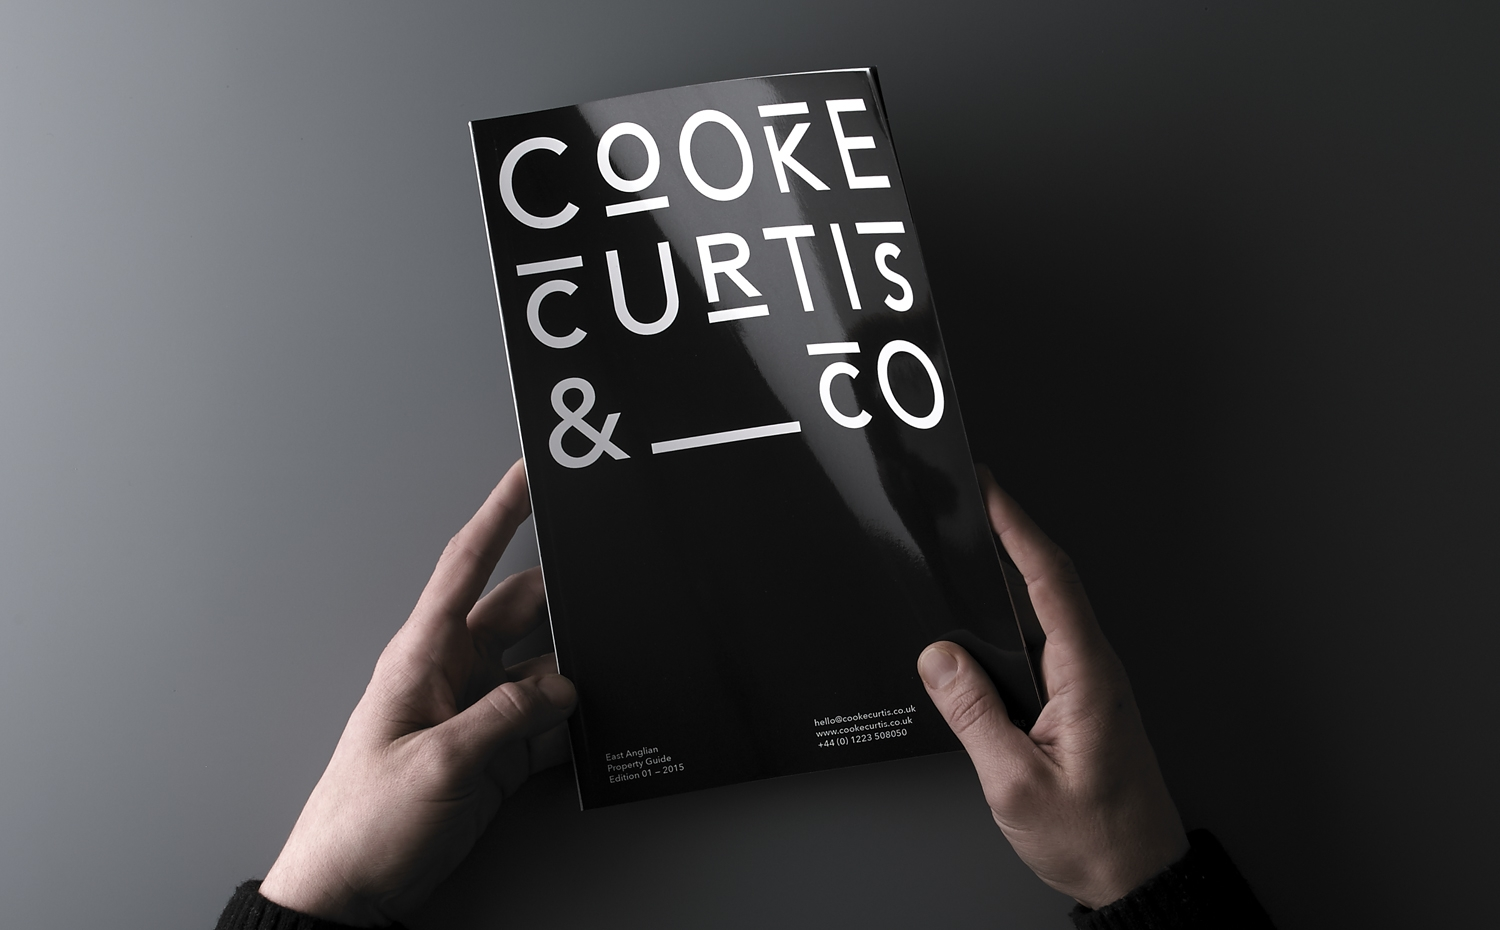 09-Cooke-Curtis-Co-Branding-Brochure-Magazine-by-The-District-on-BPO.jpg